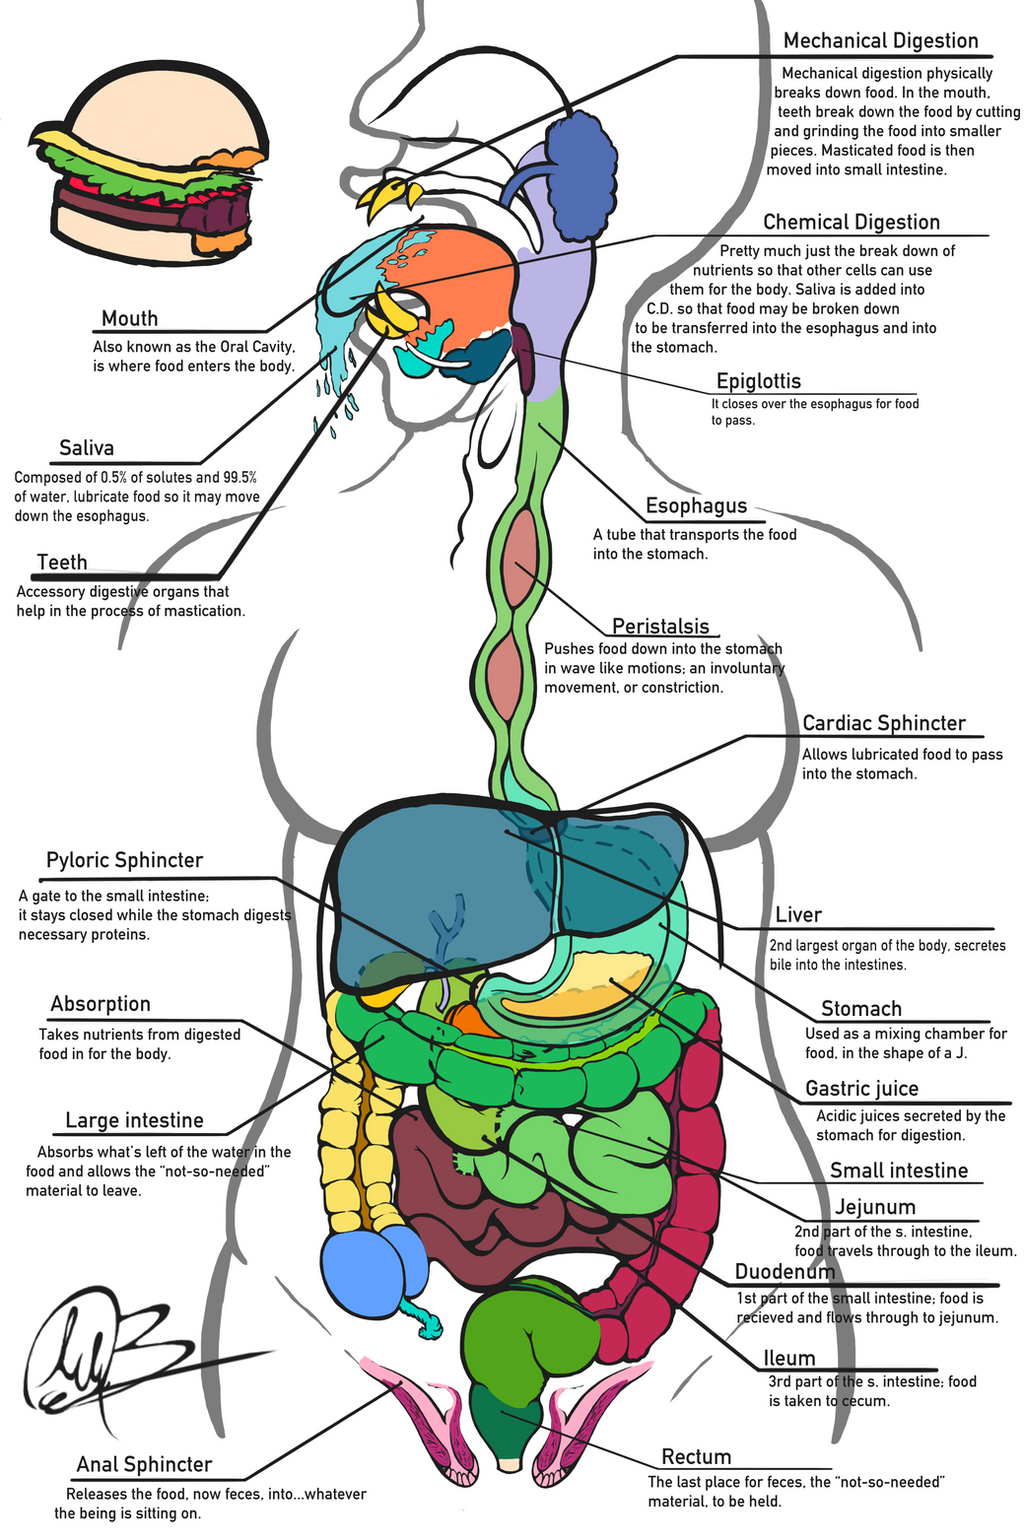 sci 241 digestive system Learn science test 7th grade digestive system with free interactive flashcards choose from 500 different sets of science test 7th grade digestive system flashcards on quizlet.